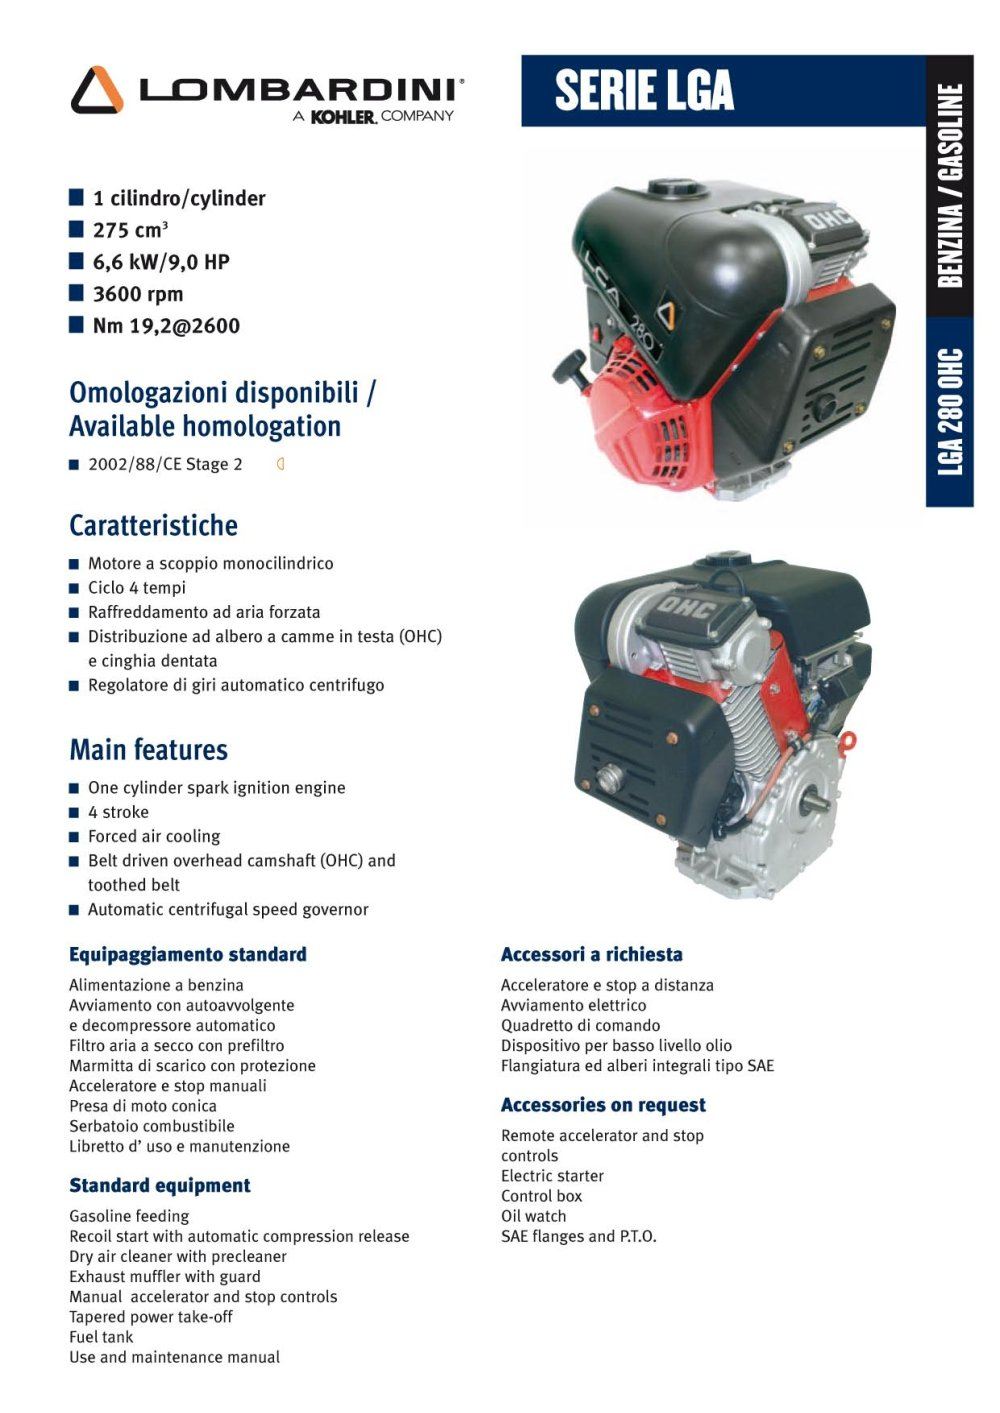 Ldw 502 Lombardini Pdf Catalogue Technical Documentation 2600 Hp Kohler Engine Schematics 1 2 Pages